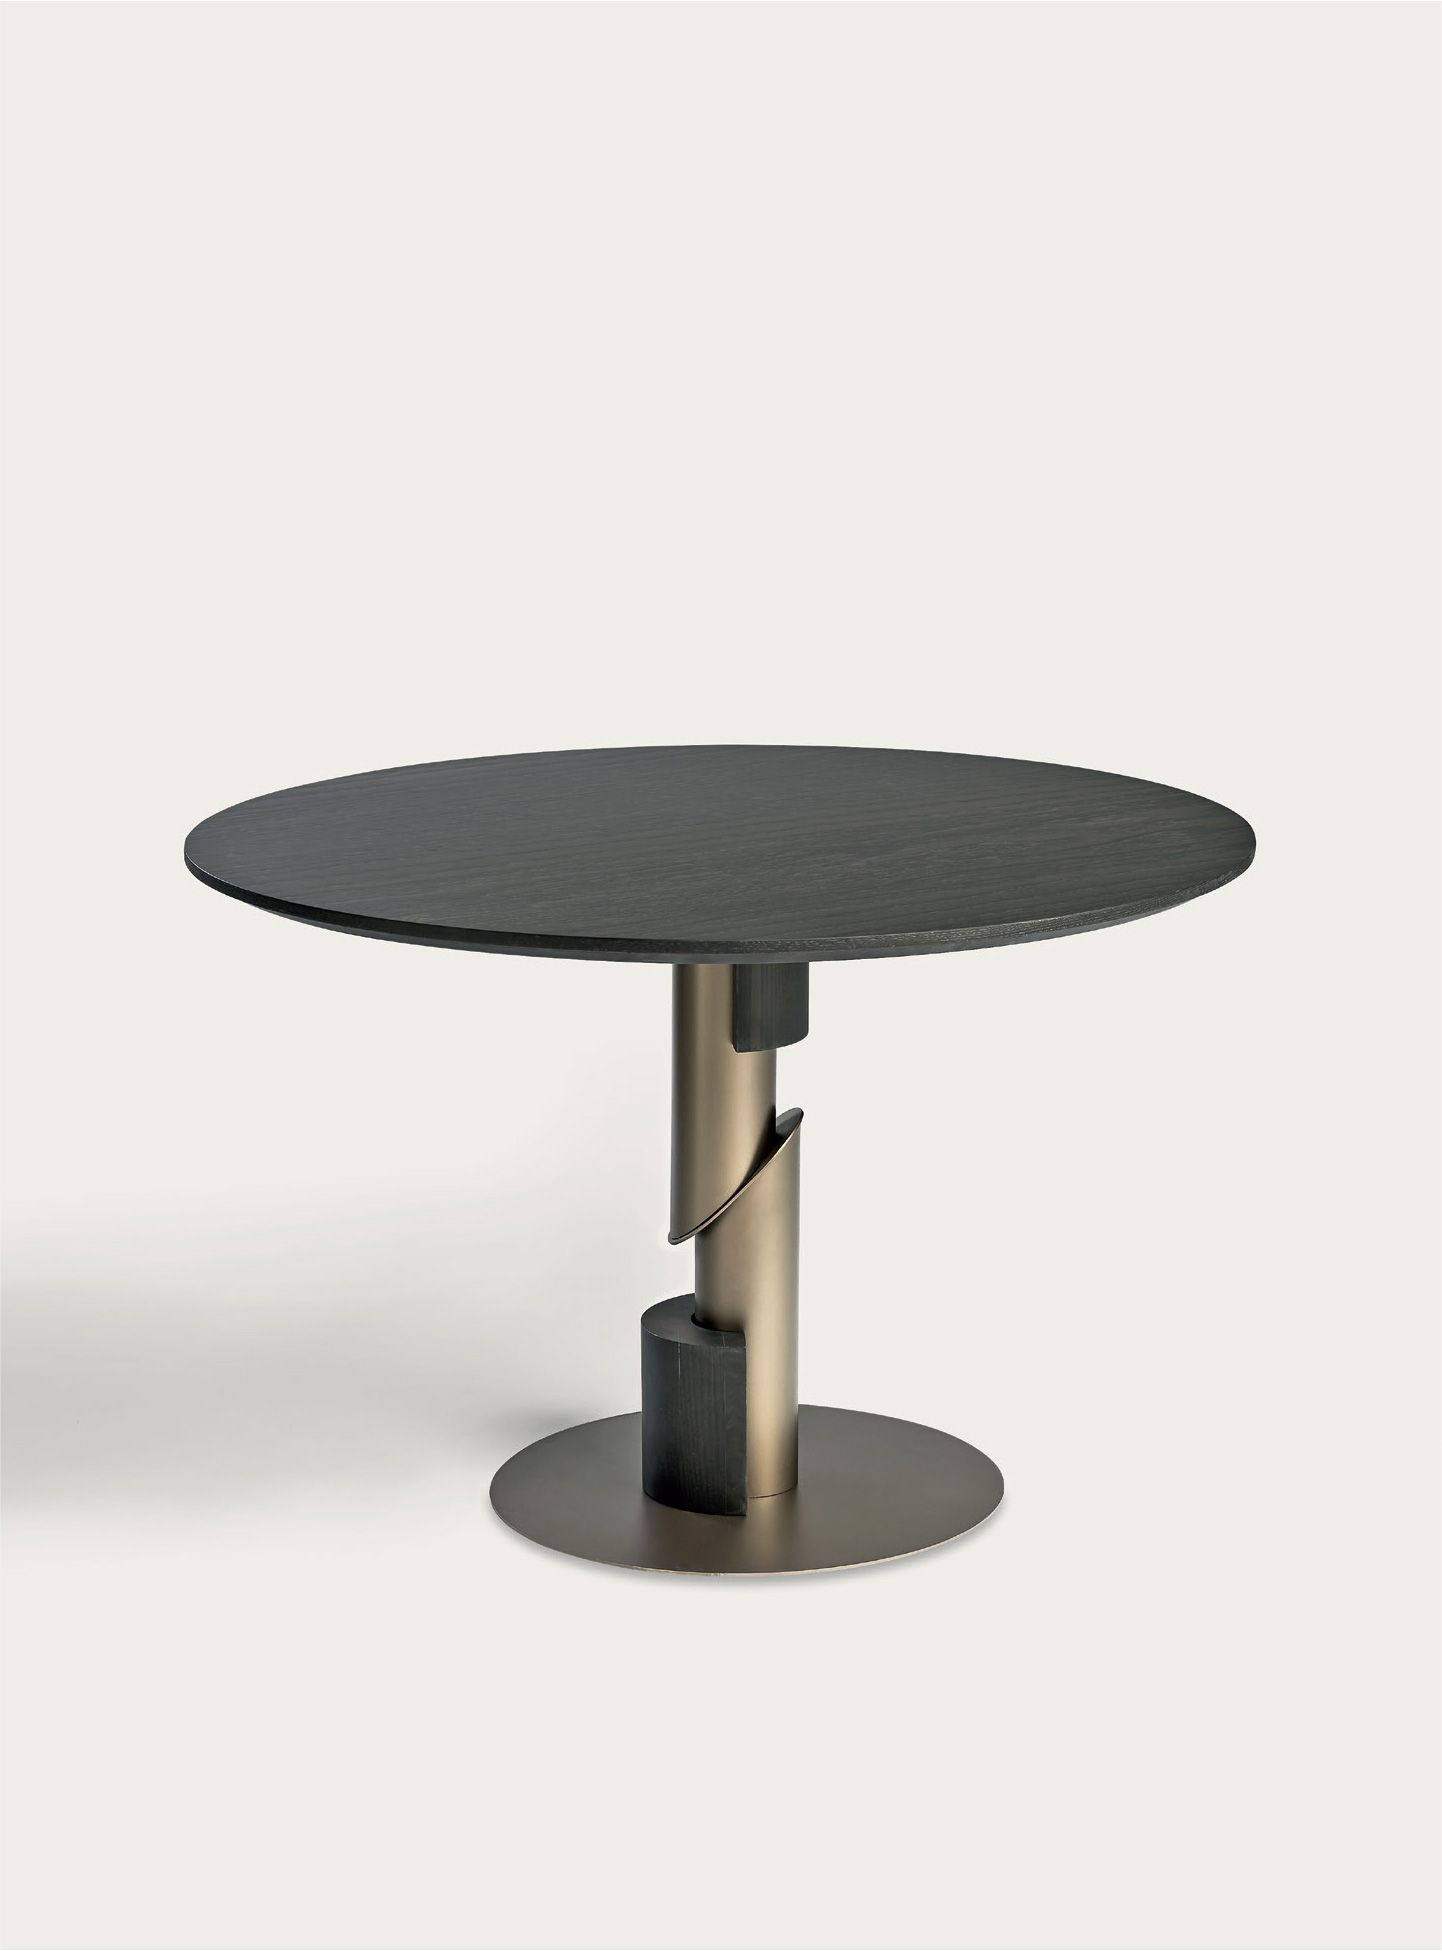 Shakedesign Tables And Desks Flow Table With Wooden Elements In